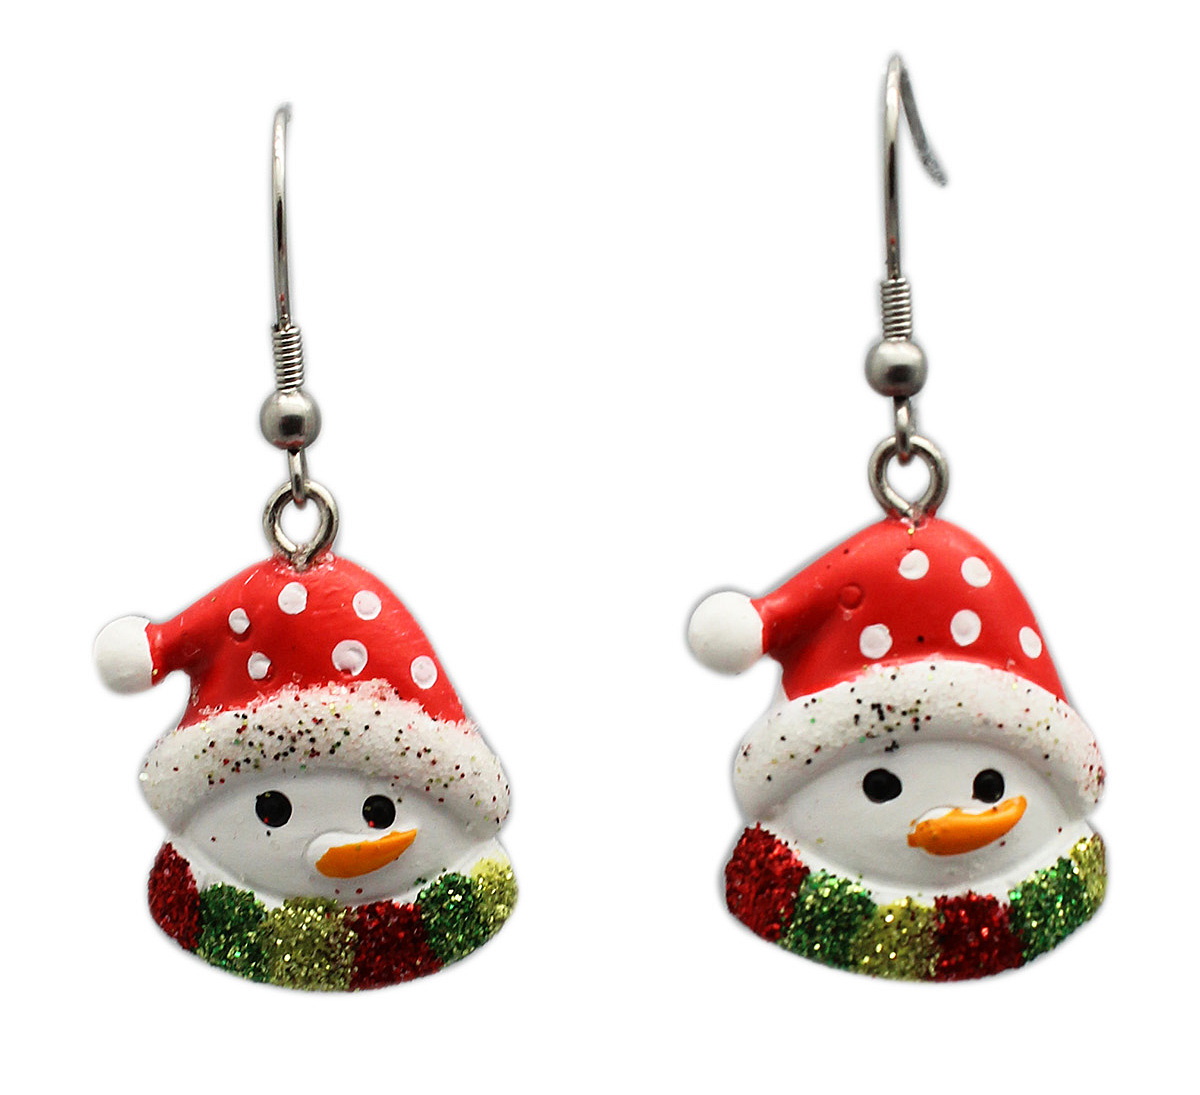 Lump of Coal Box With Santa Hat Snowman Earrings Inside - By Ganz